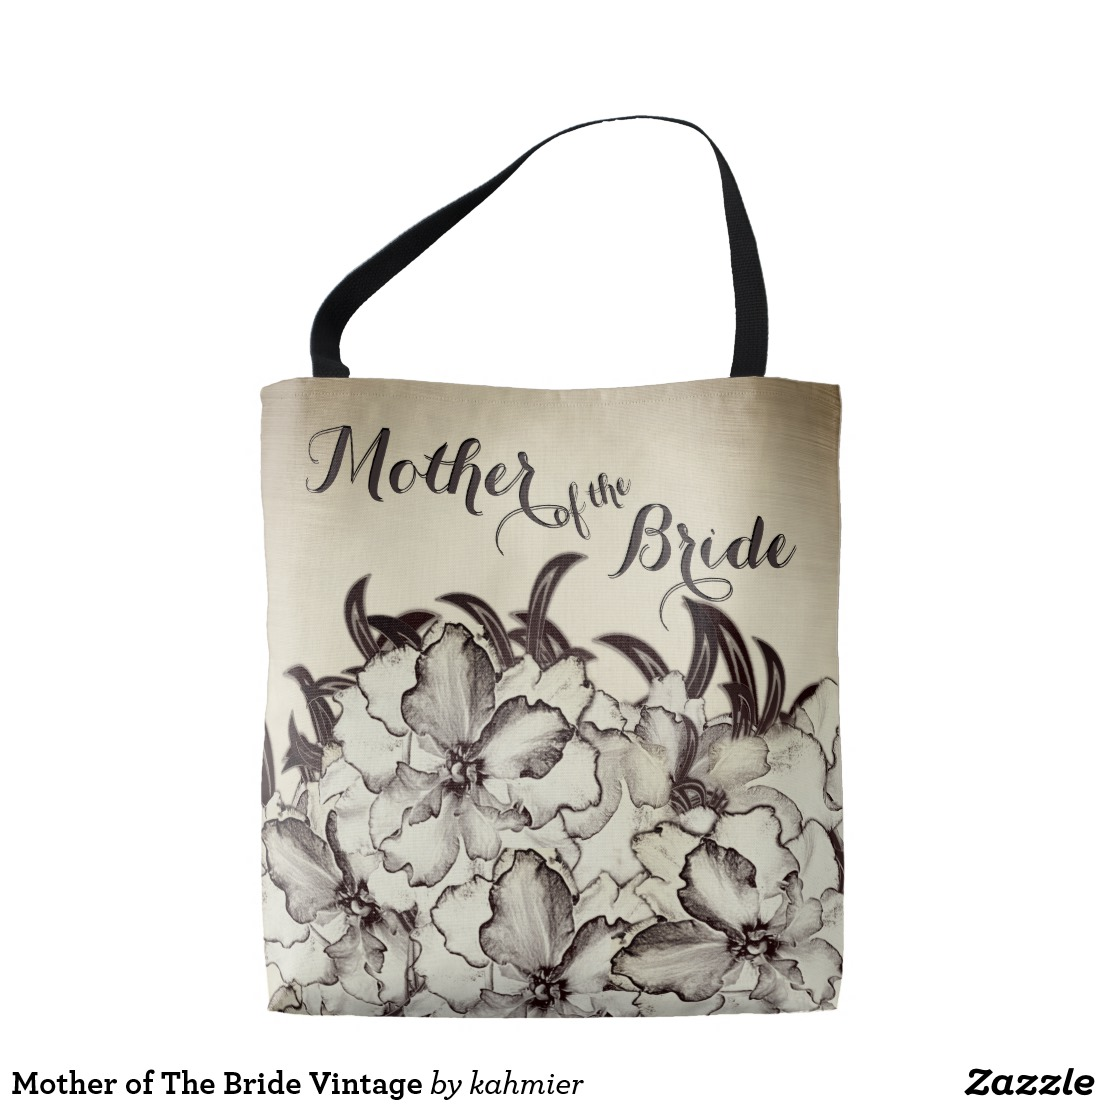 Mother of The Bride Vintage Tote Bag